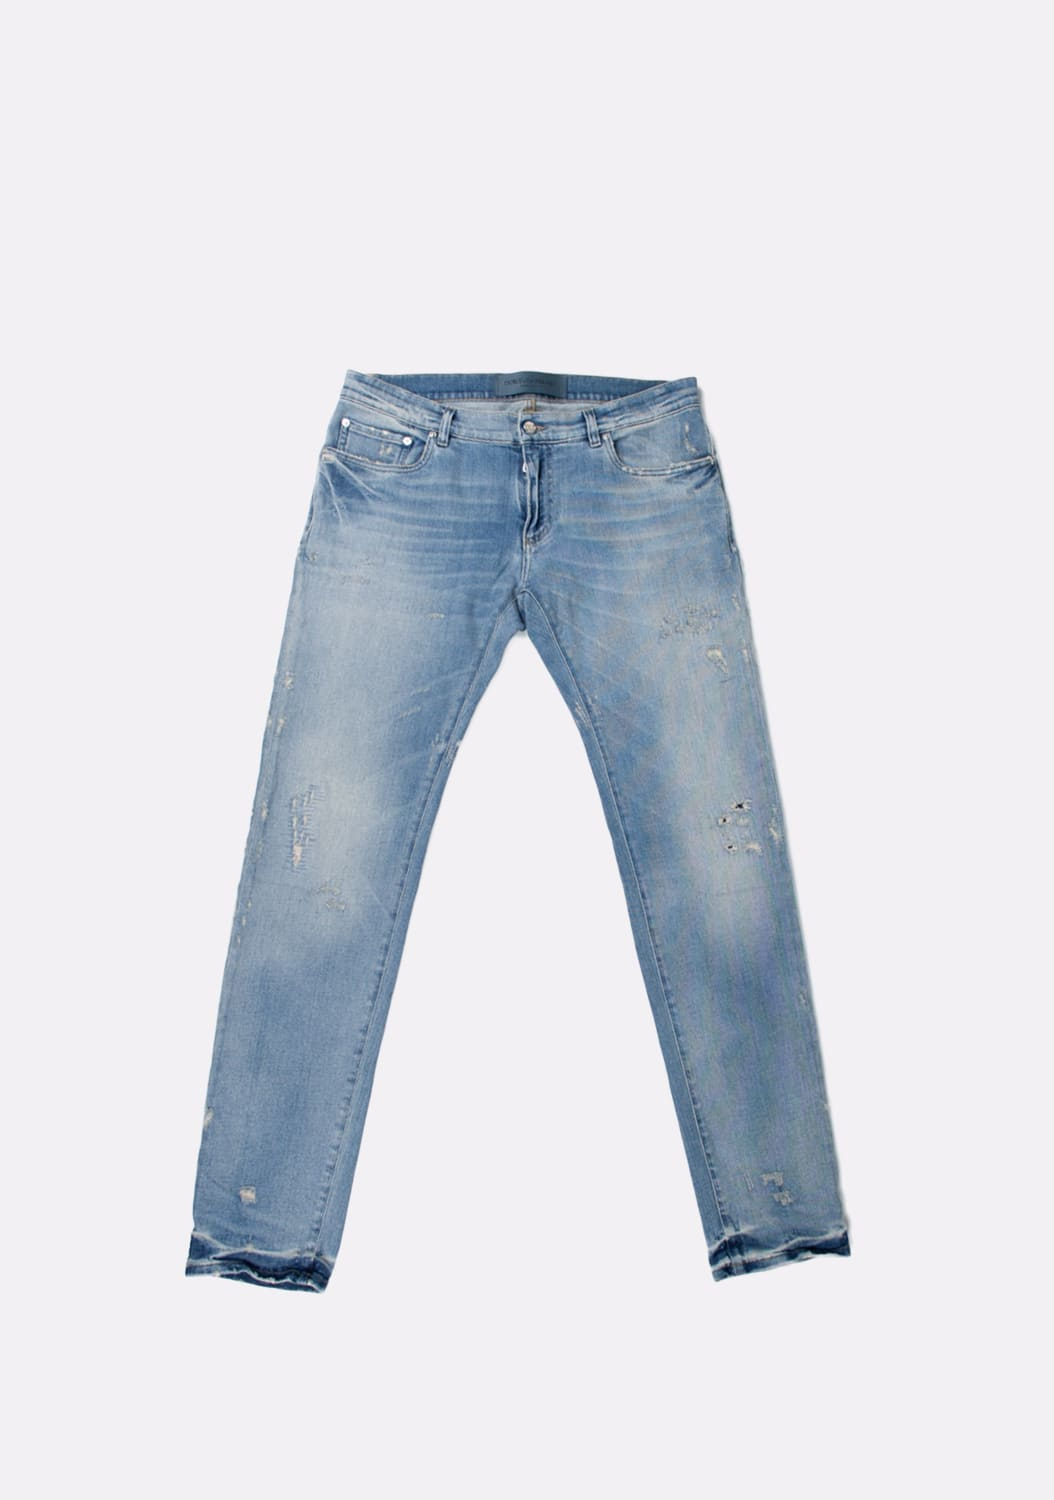 Dolce&Gabbana-Main-Line-14-Stretch-Distressed-Men-Jeans-Size-52-ITA (1)